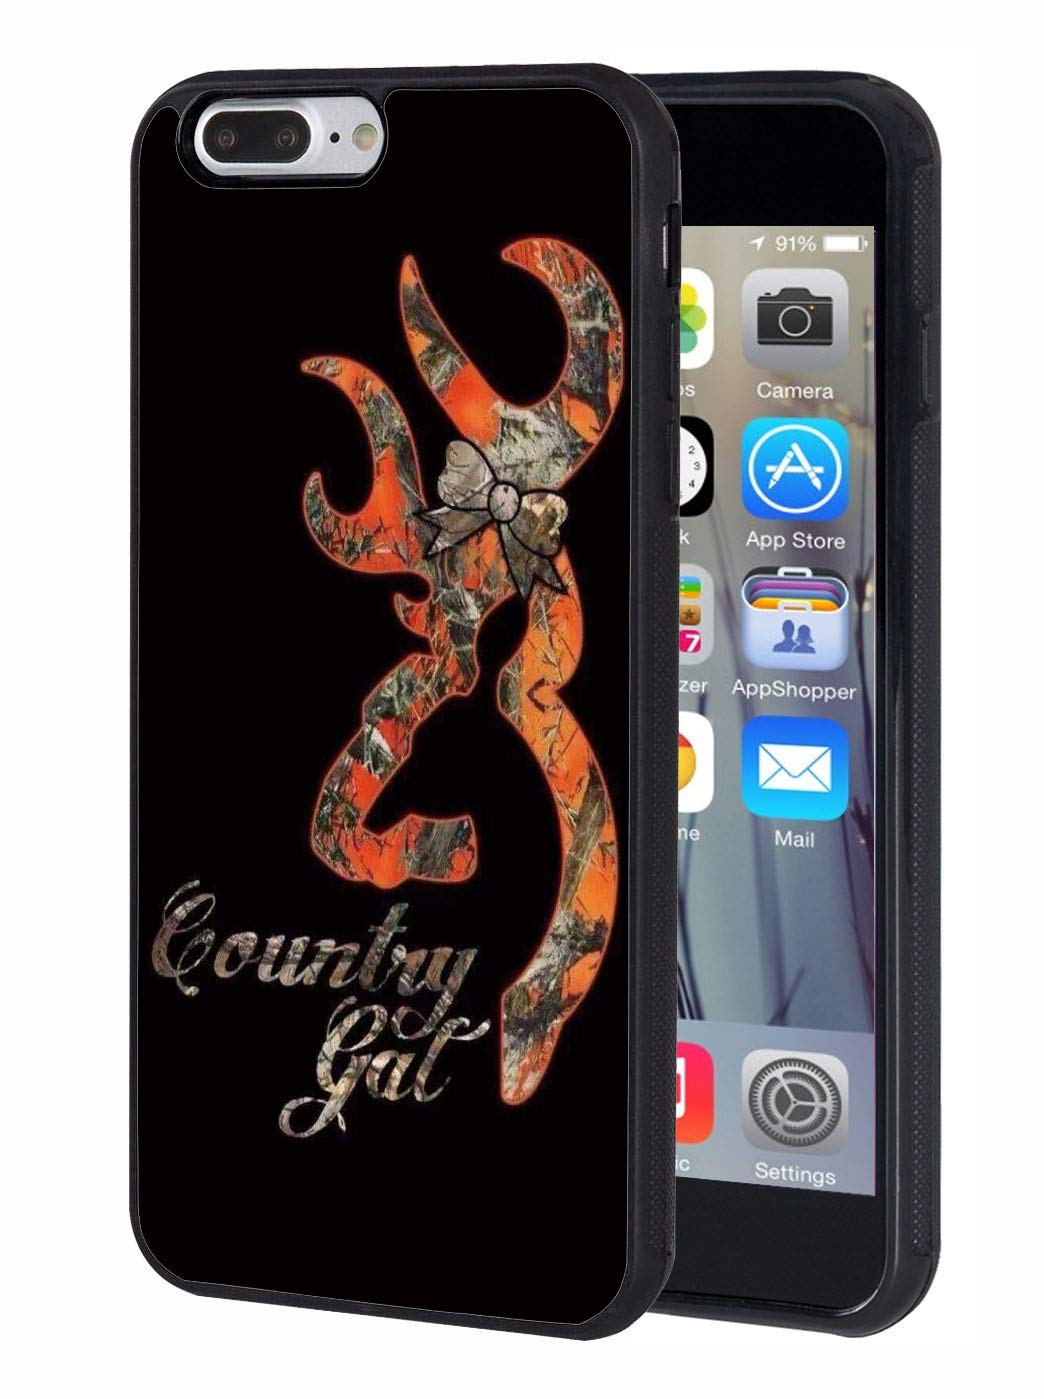 iPhone 7 Plus Case,iPhone 8 Plus Case,Browning Deer Camo Country Girl  Design Slim Anti-Scratch TPU Rubber Protective Case Cover for Apple iPhone  7